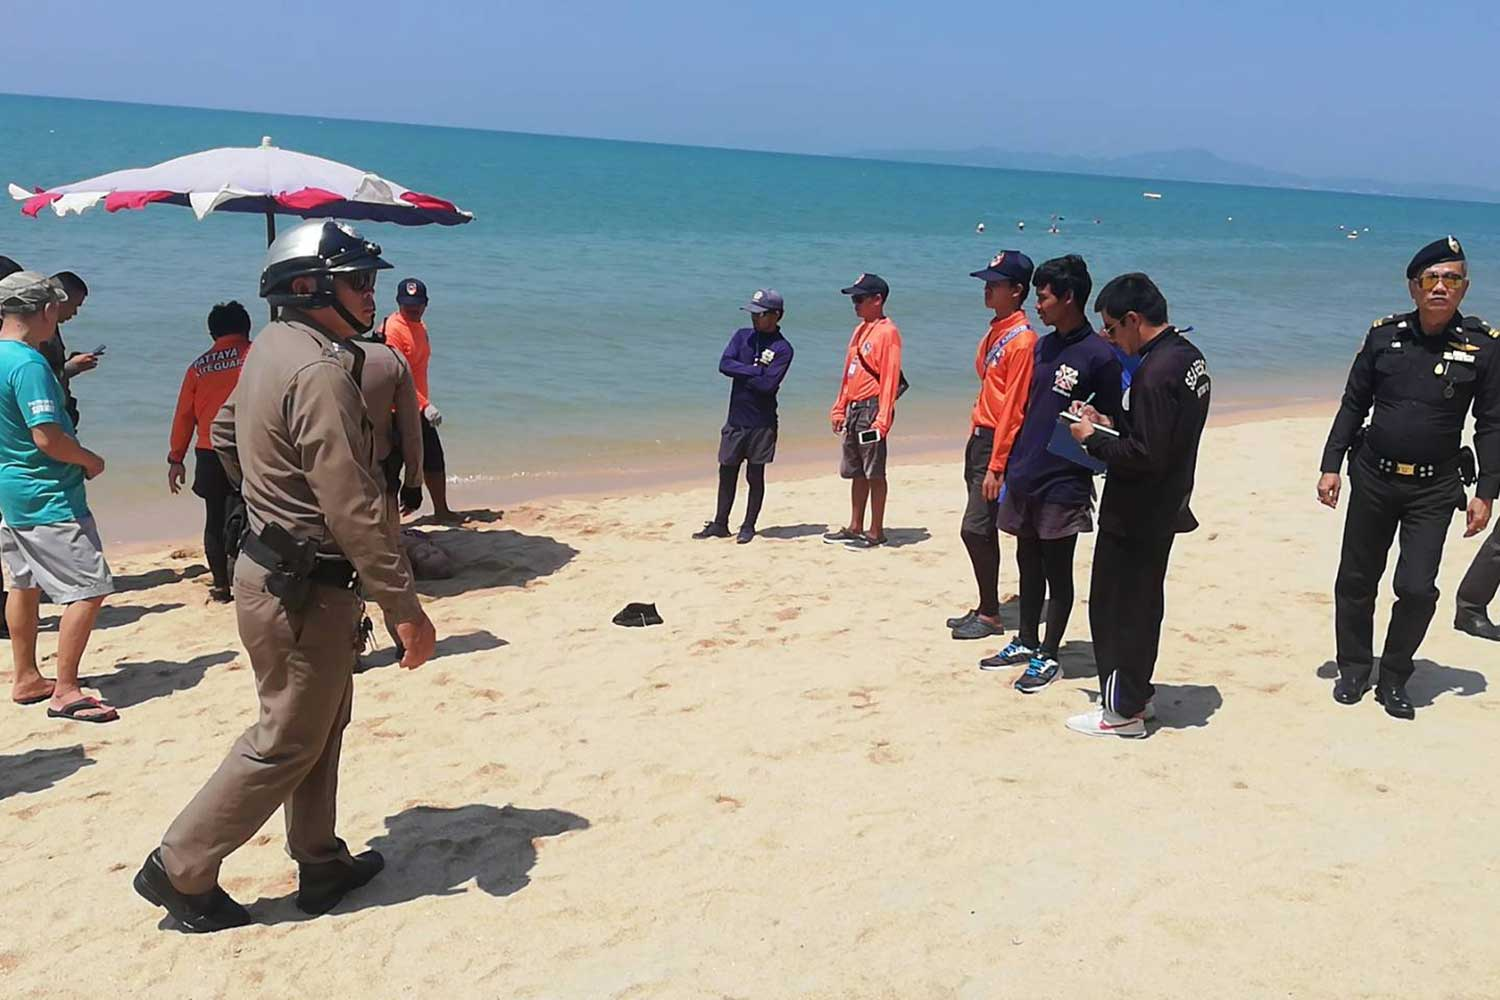 Police with the body of the Kazakhstani woman, 78, at Jomtien beach, near  Pattaya town, in Chon Buri on Thursday morning. (Photo by Chaiyot Pupattanapong)